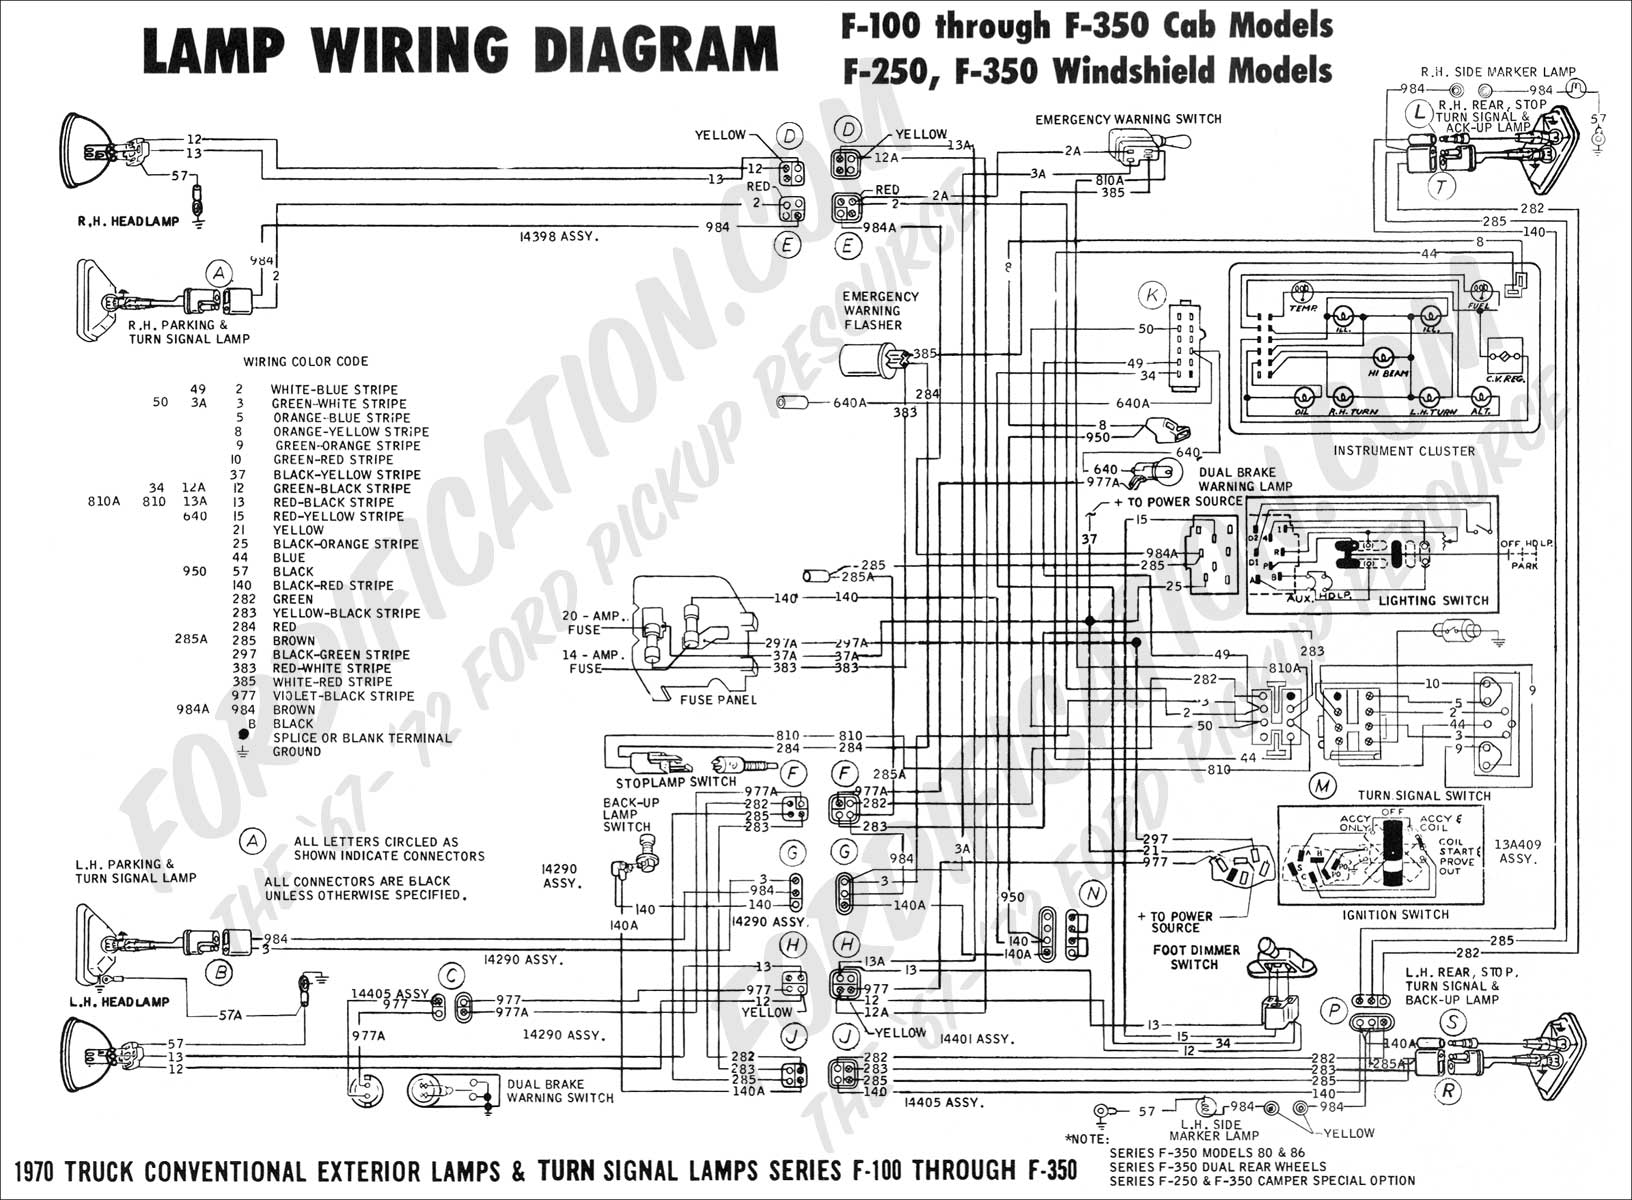 Ford truck technical drawings and schematics section h wiring 1970 f 100 f250 lamp wiring 01 publicscrutiny Gallery